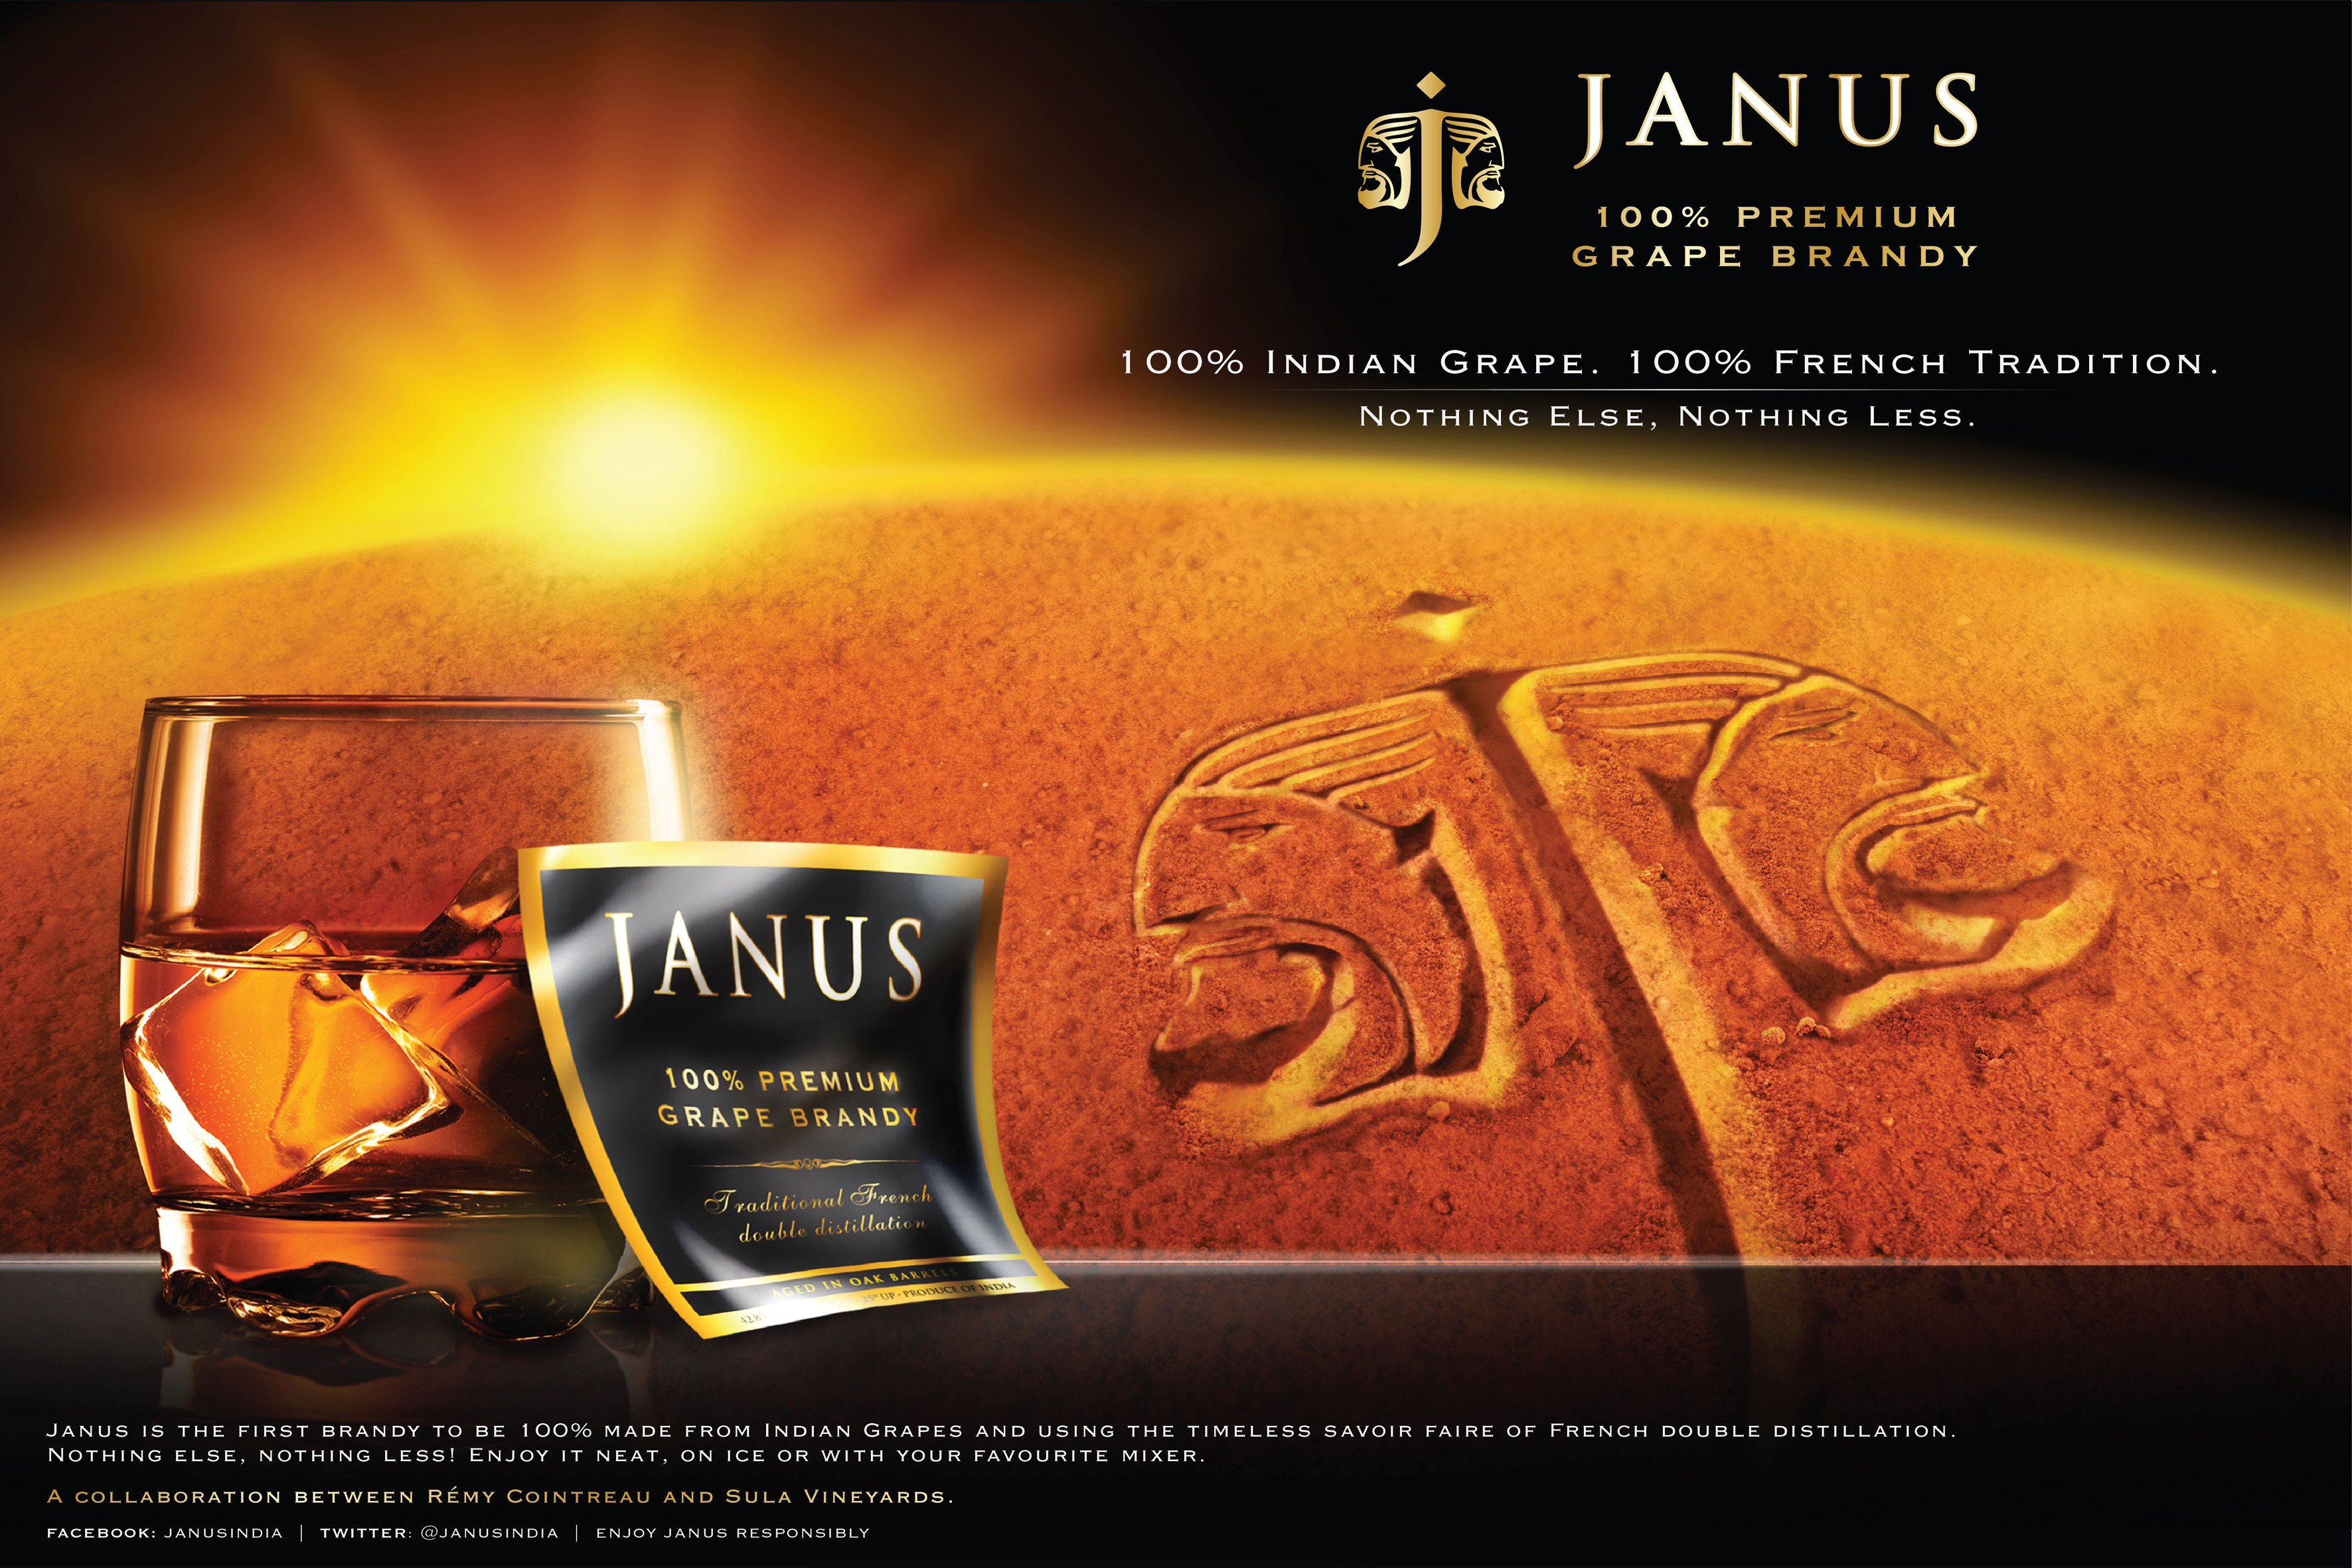 Sula Vineyards Janus image slider 2